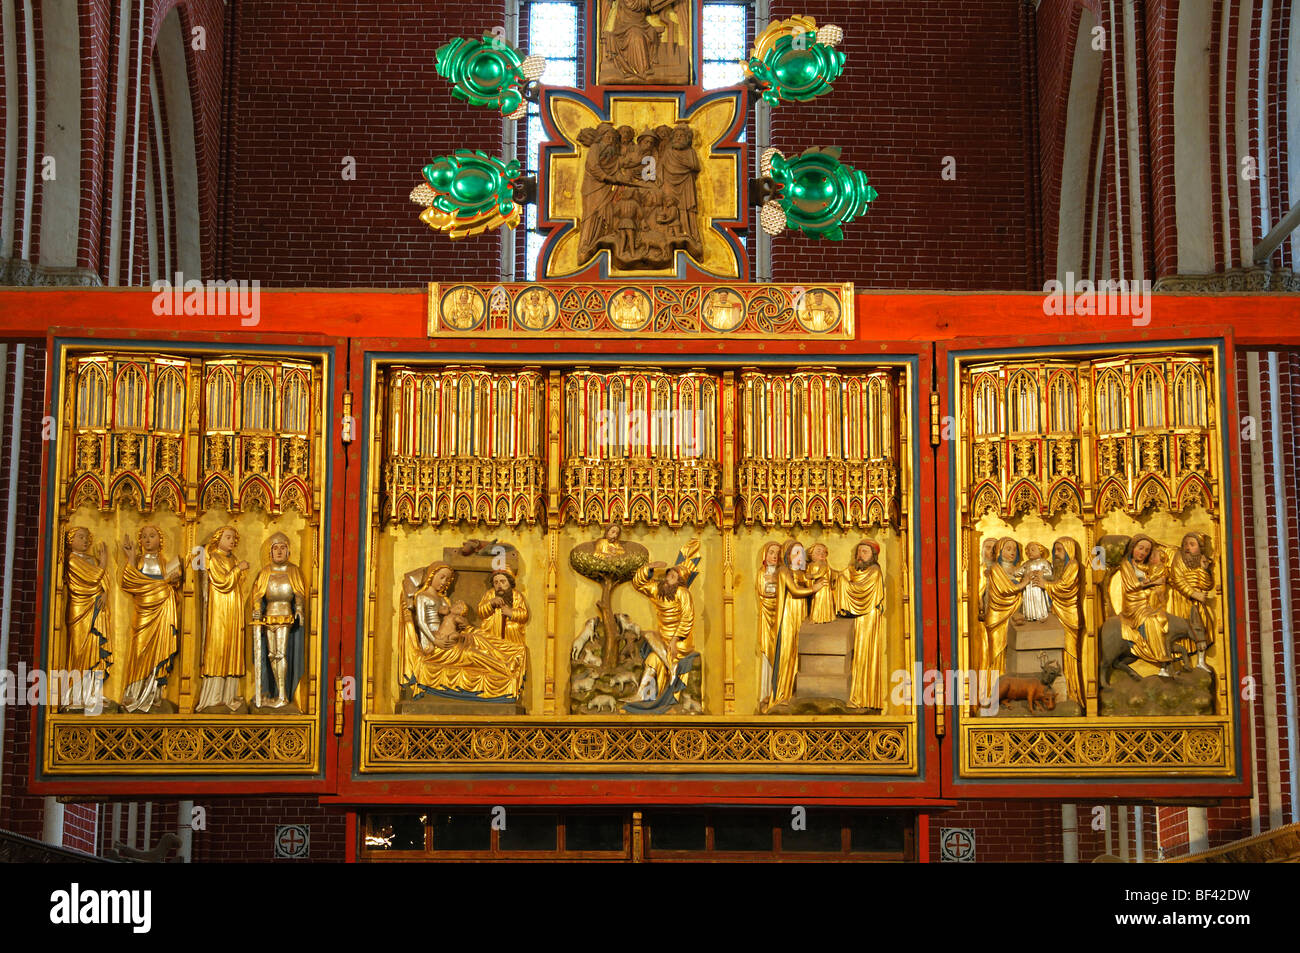 Biblical depictions on Mary's side of the double sided cross altar, Muenster Bad Doberan, Mecklenburg-Western - Stock Image